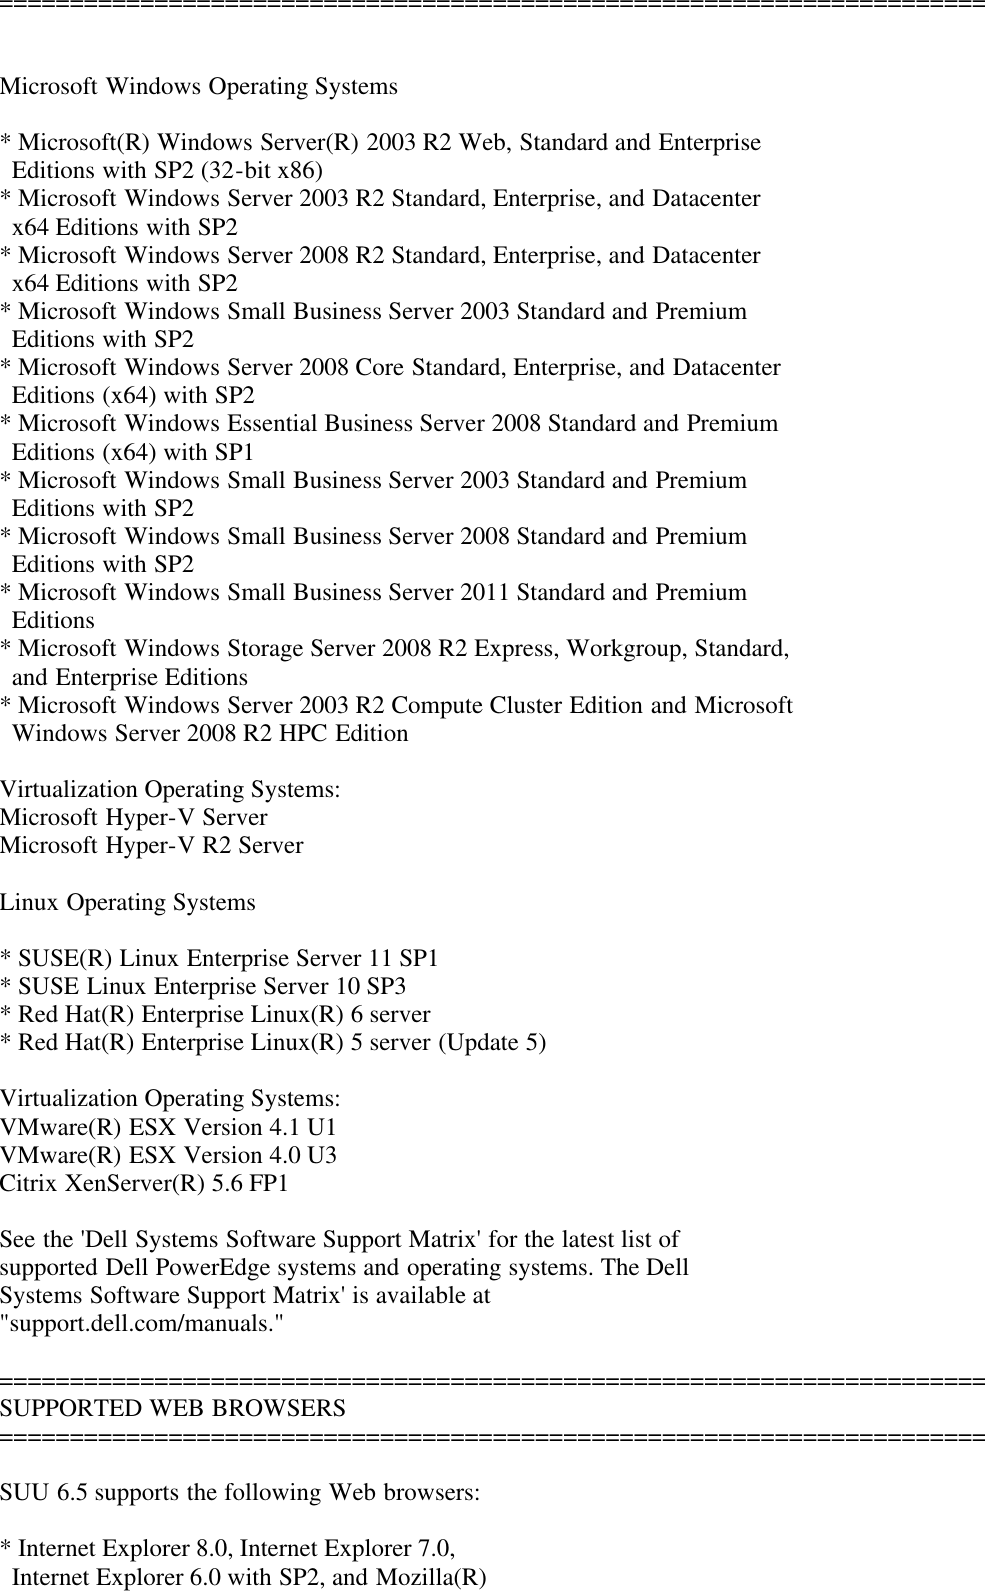 Dell Server Update Utility Version 6 5 Owners Manual 6 5 Readme